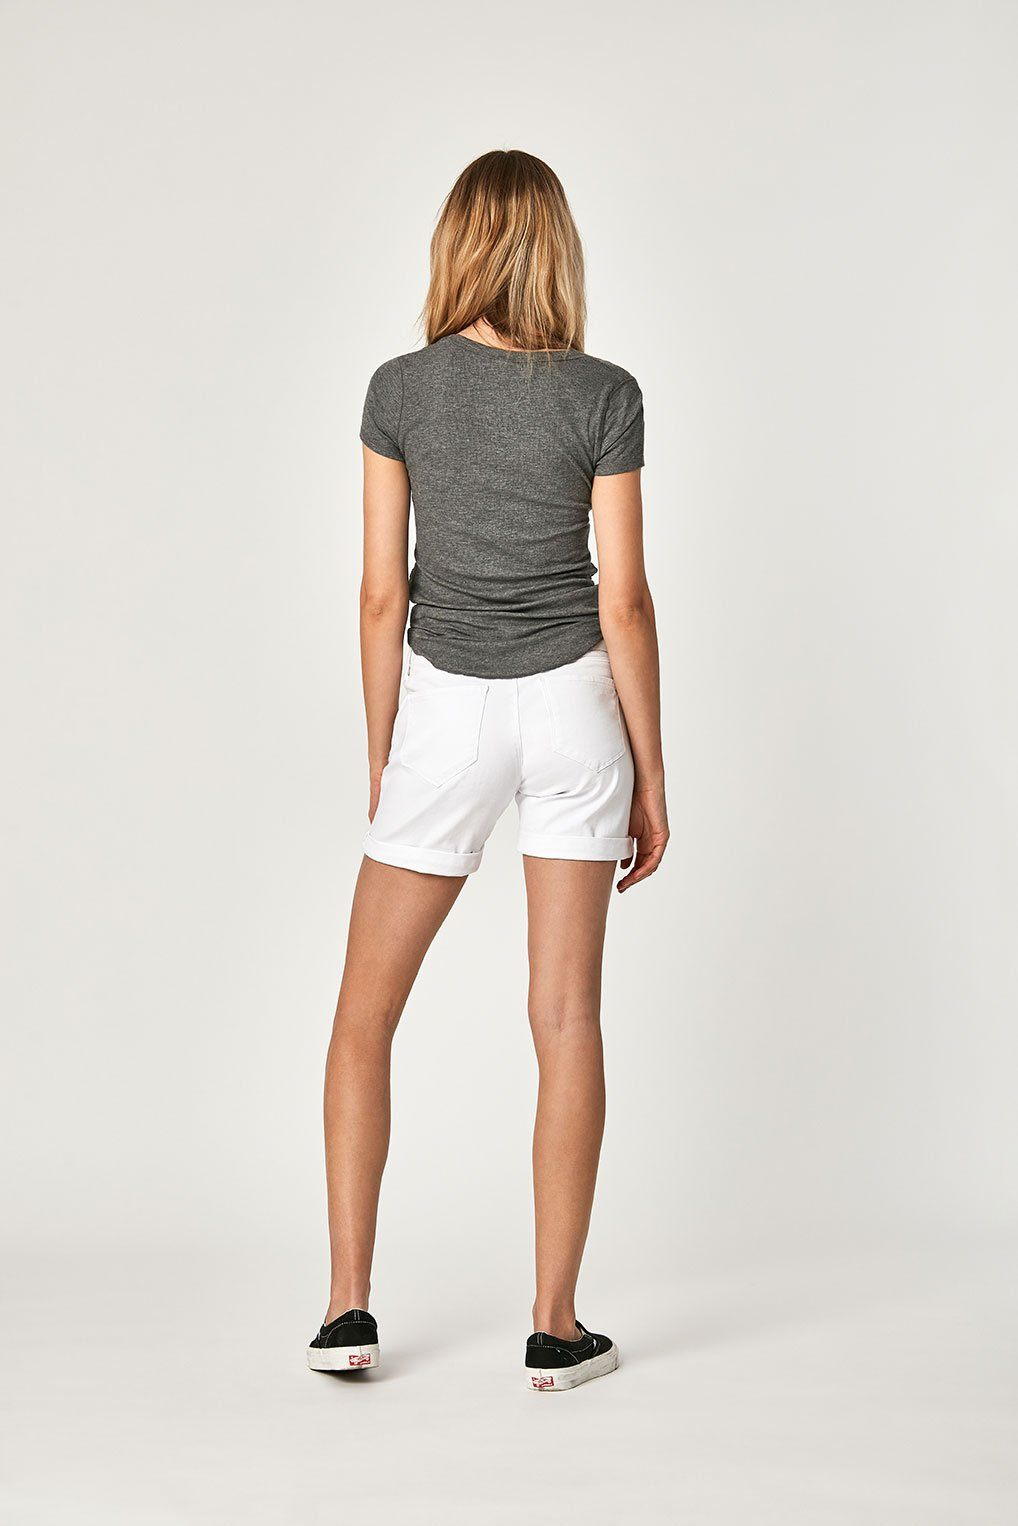 PIXIE SHORTS IN WHITE TRIBECA Image 5